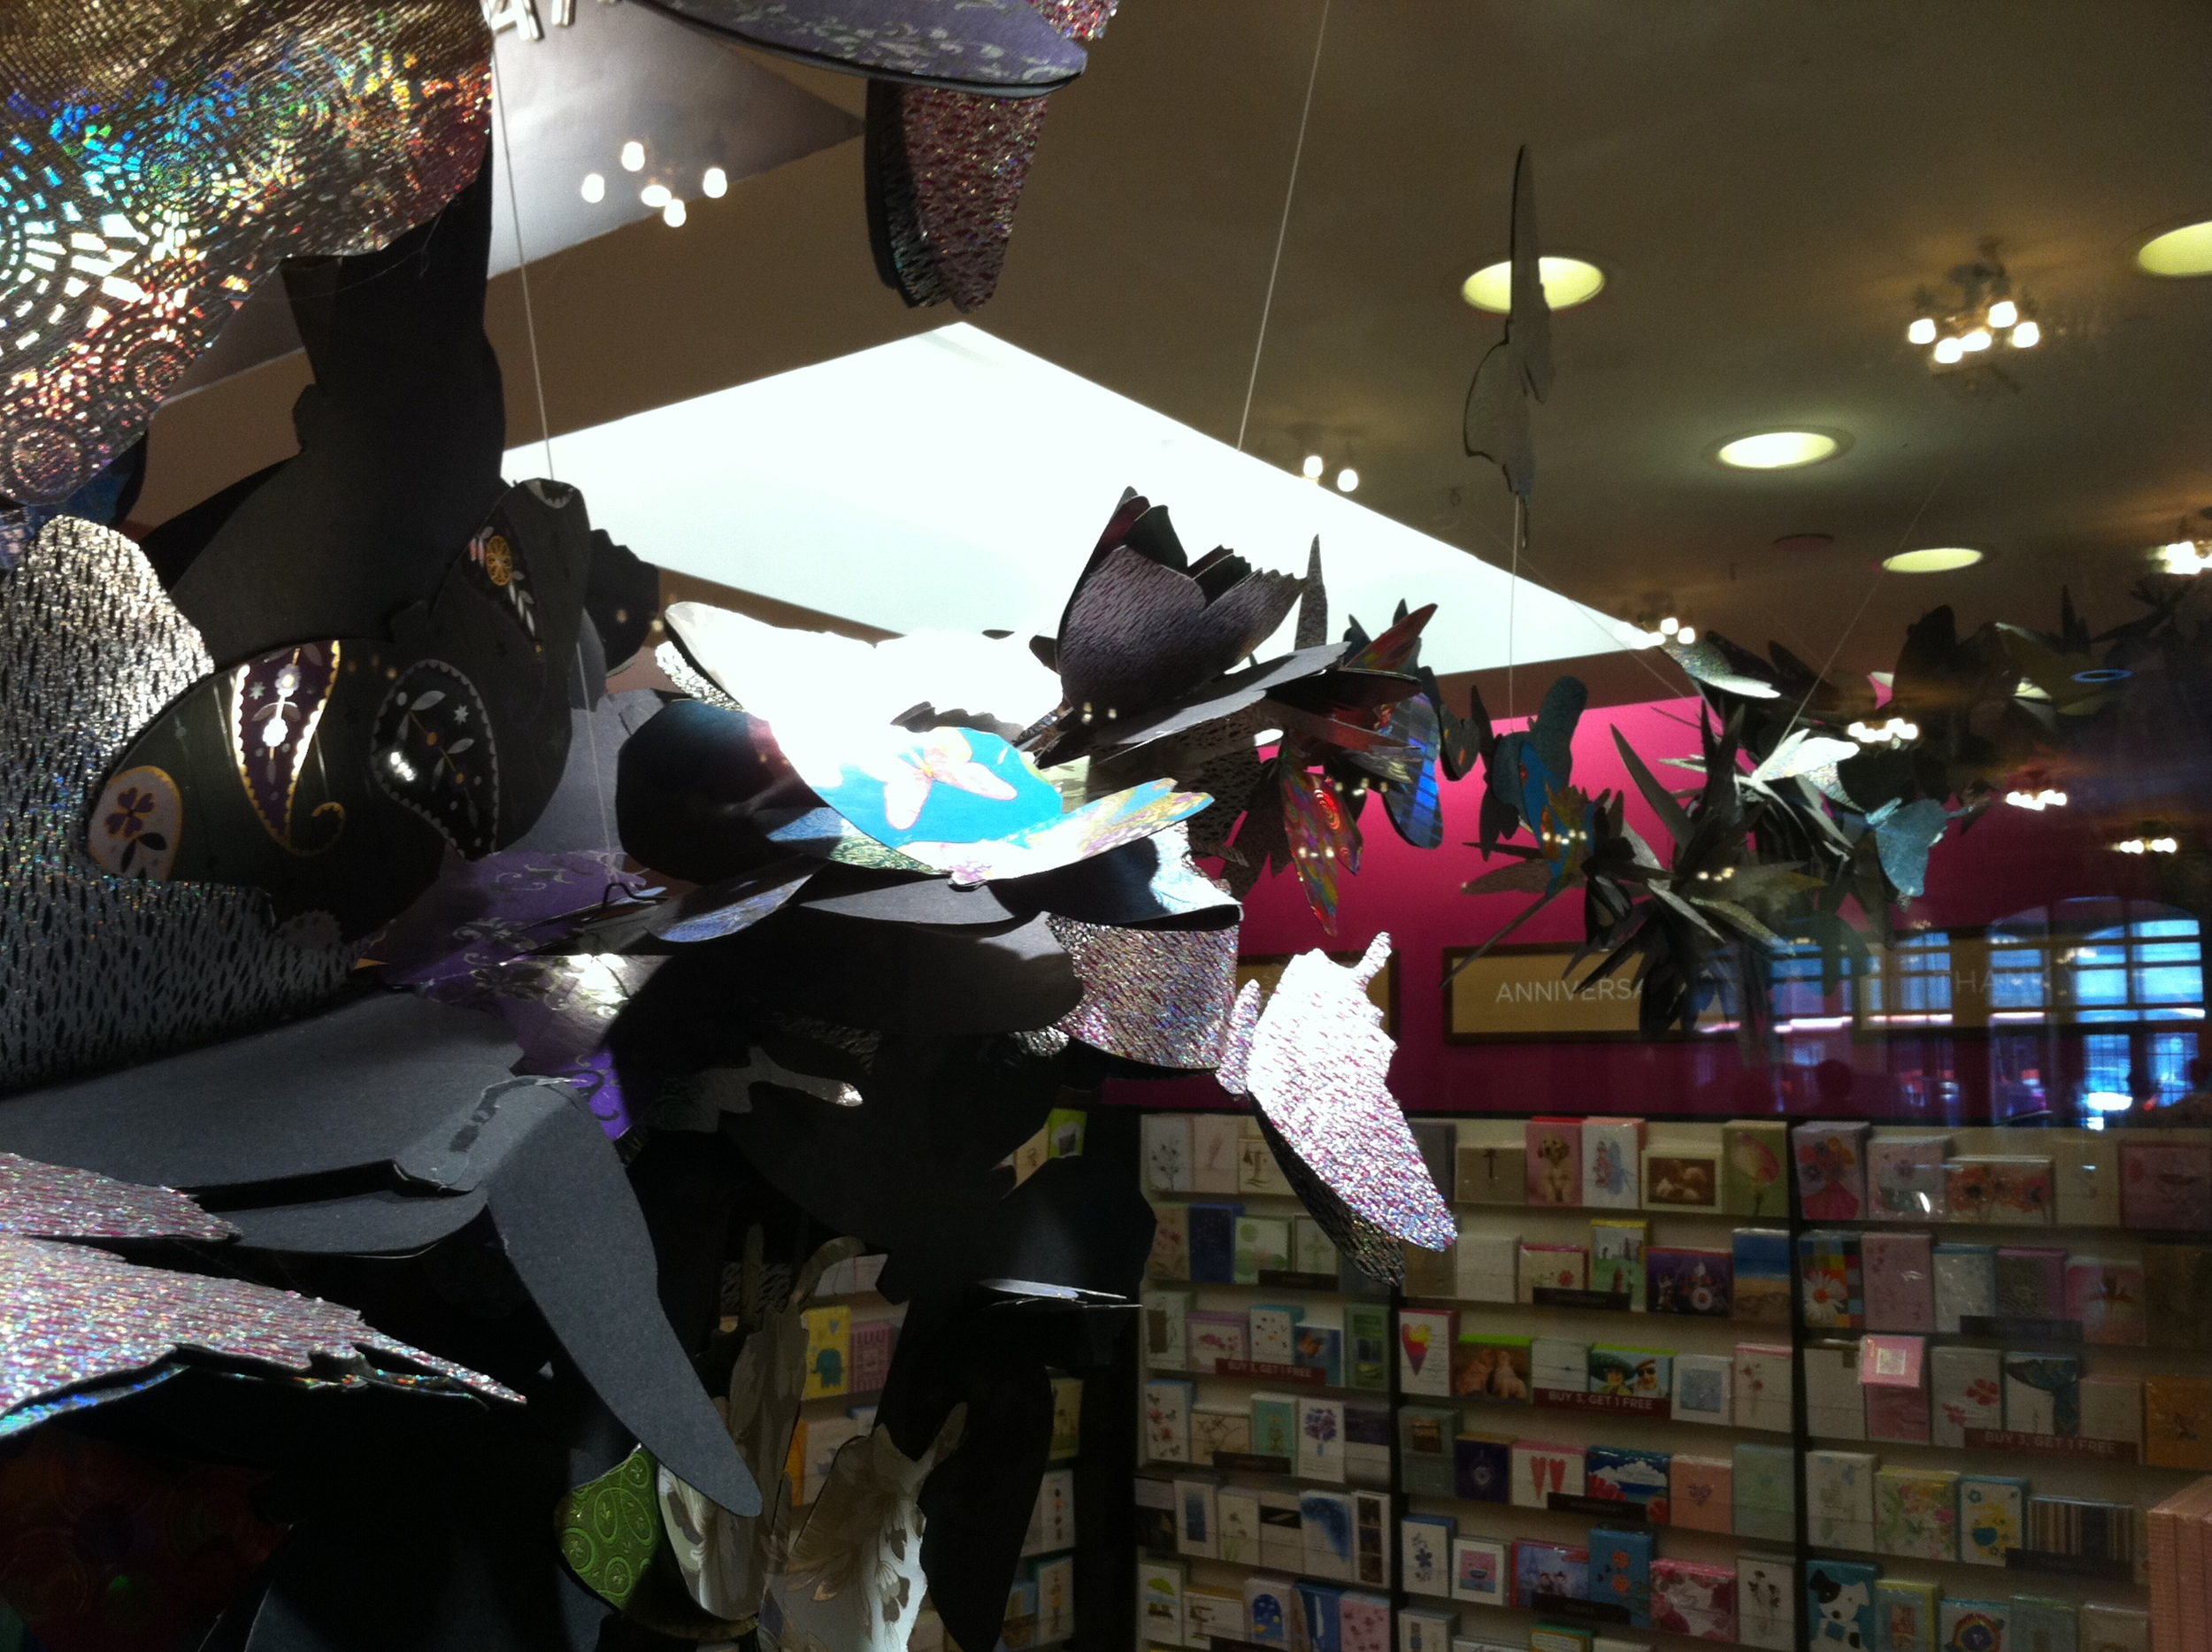 PAPYRUS STORE BUTTERFLY DISPLAY GRAND CENTRAL STATION NEW YORK CITY 2